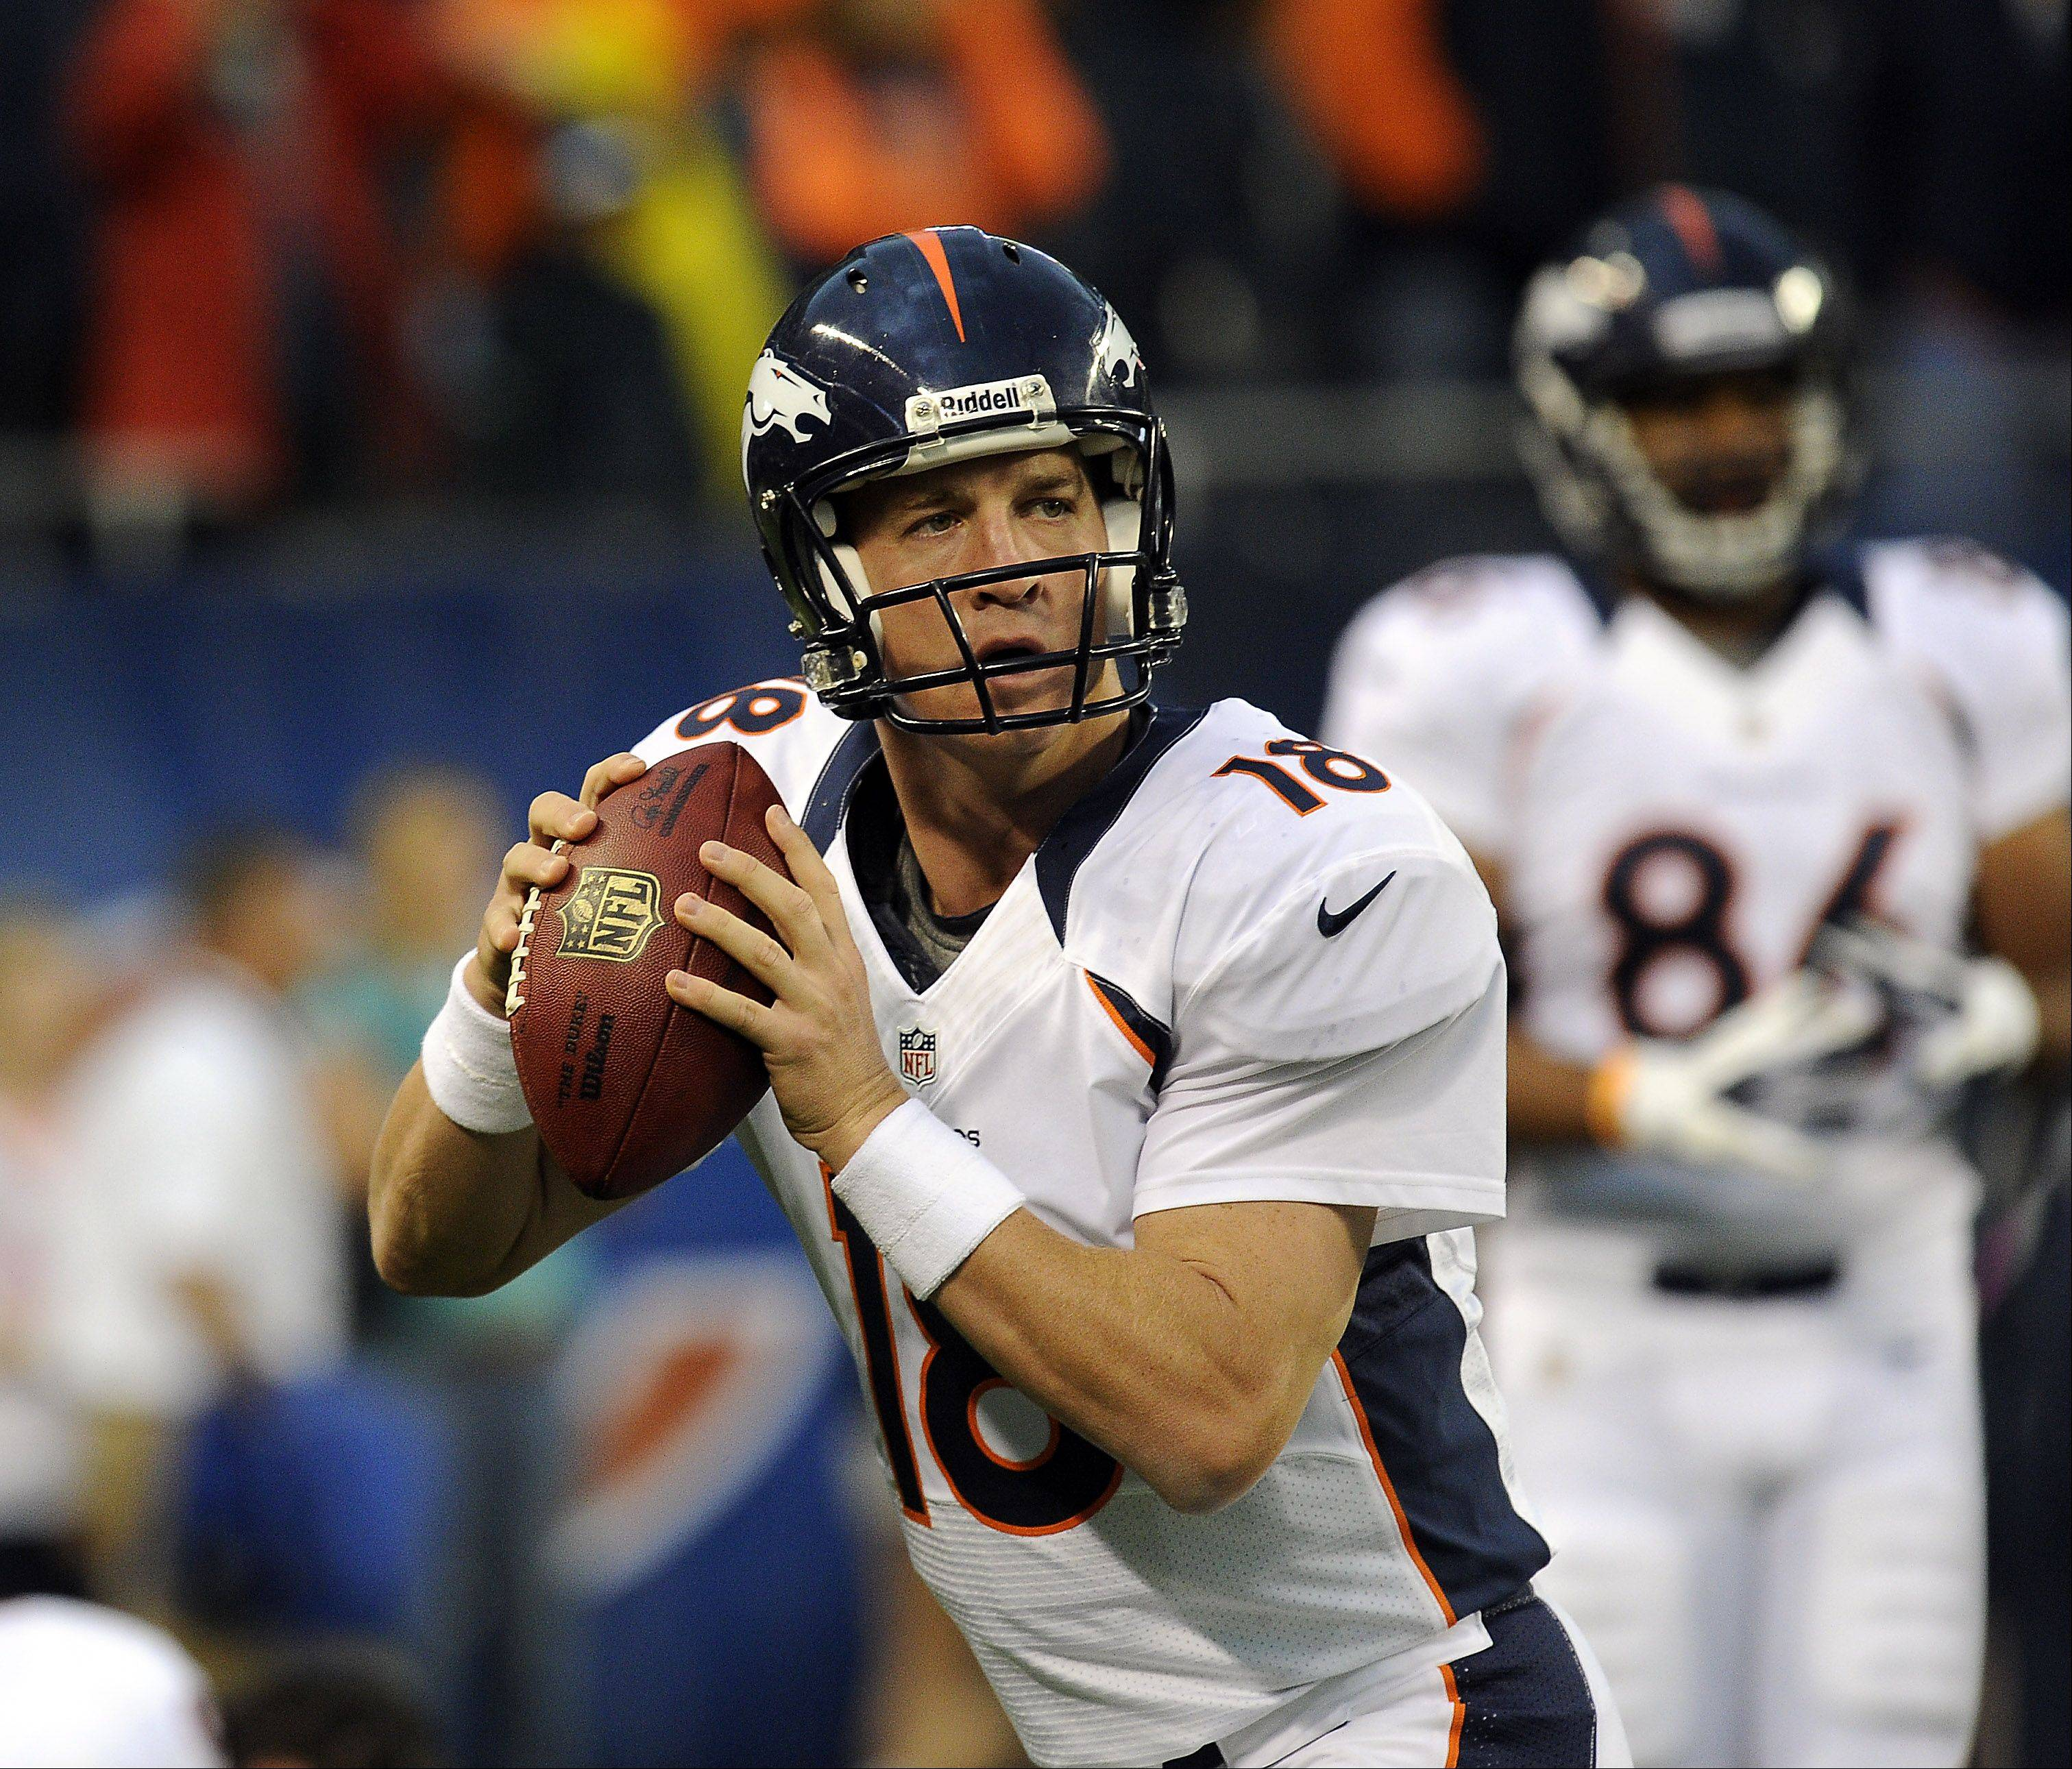 Denver Broncos quarterback Peyton Manning warms up before the game.